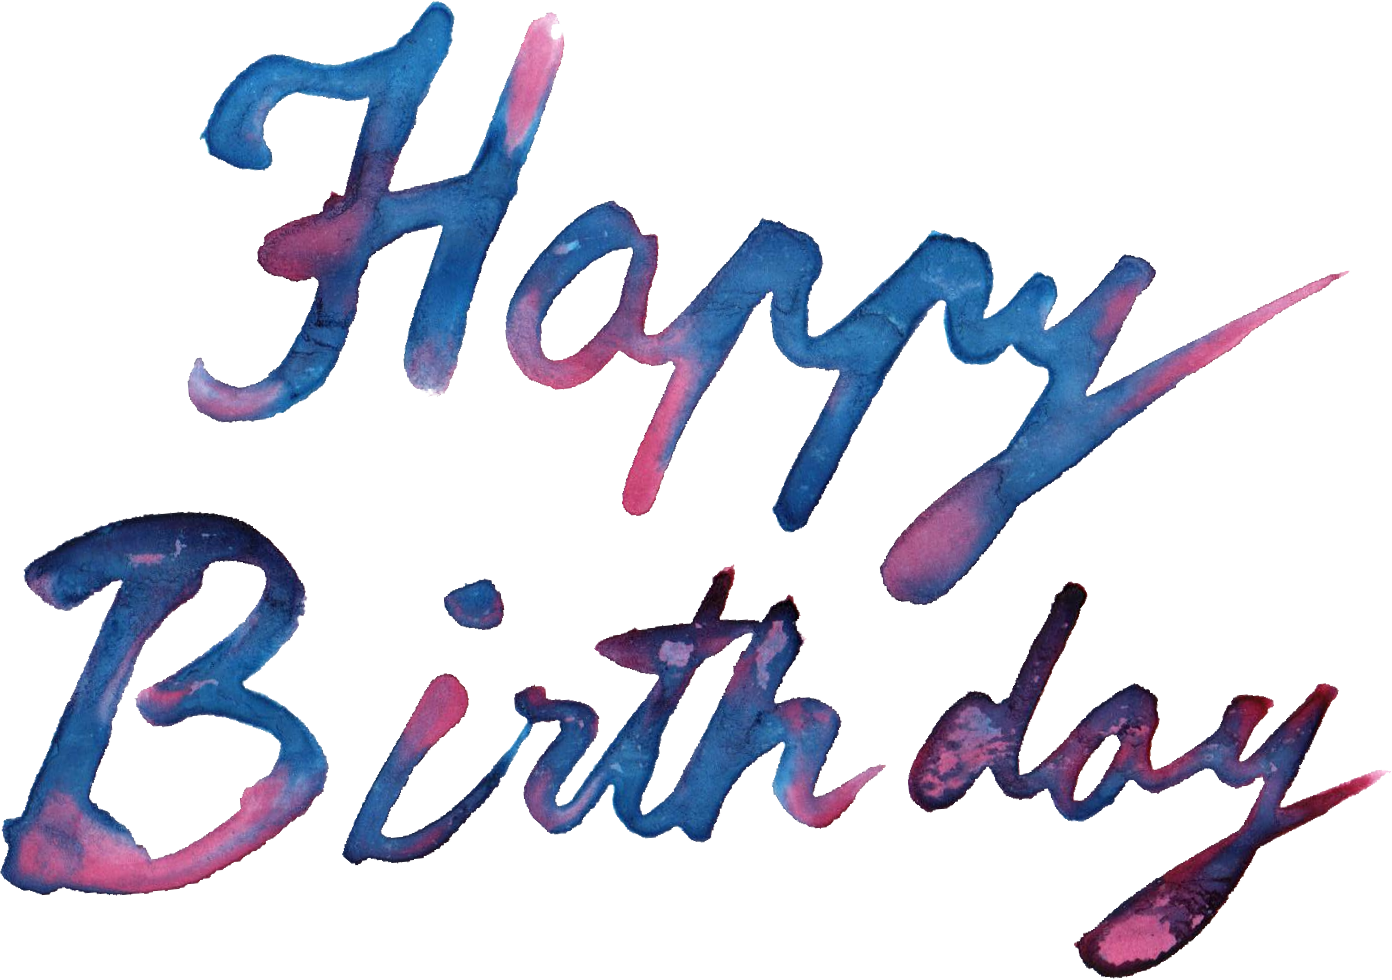 watercolor transparent onlygfx. Happy birthday images png